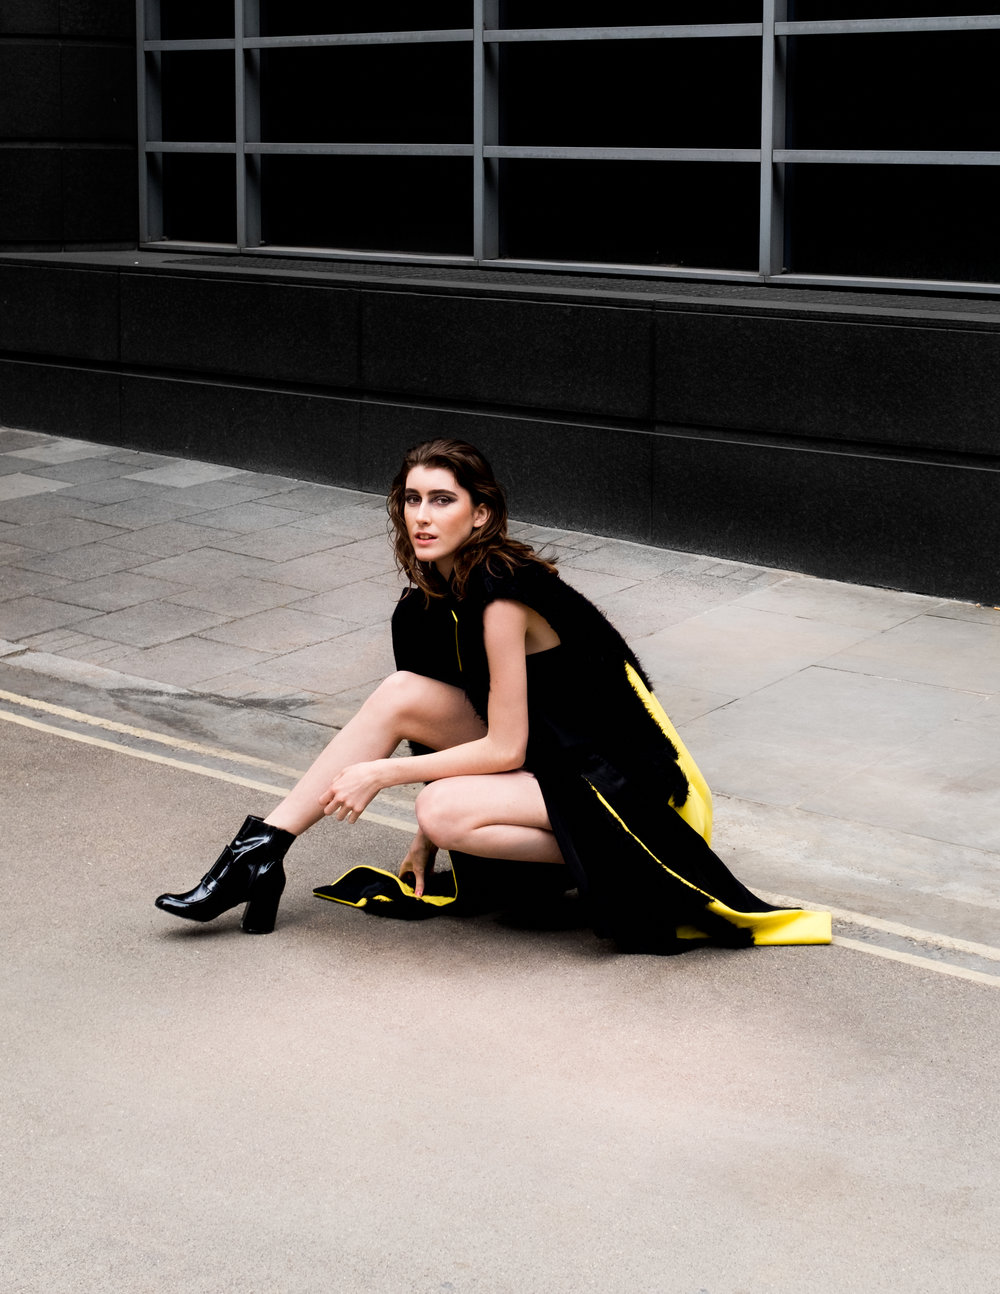 BLACK DRESS - XIAOQIAN SHAO, YELLOW COAT - ANNIE CHOI, BOOTS - ASOS